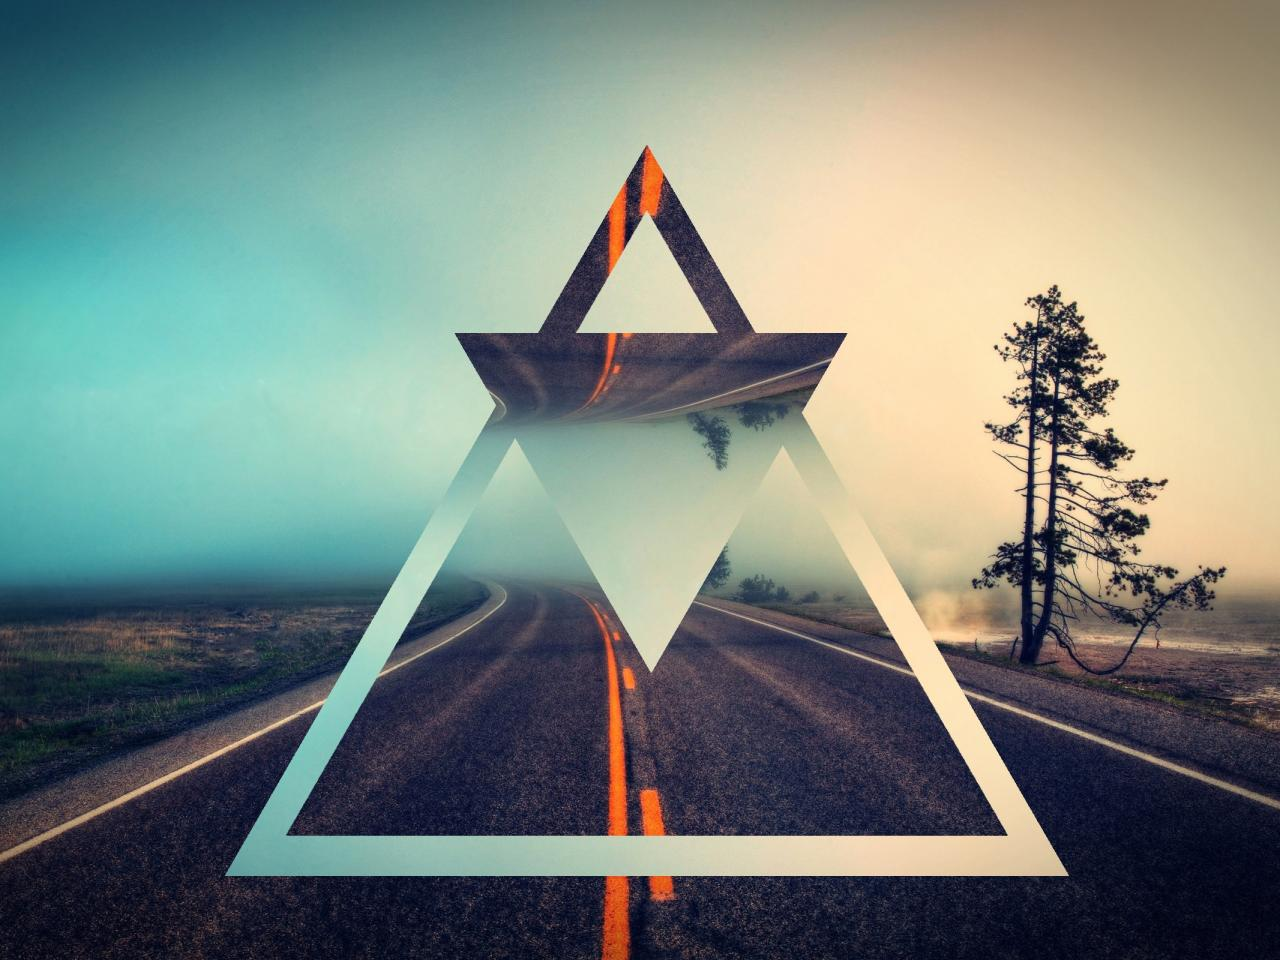 Artistic hipster wallpaper for laptop backgrounds hd - Download wallpaper free for laptop ...